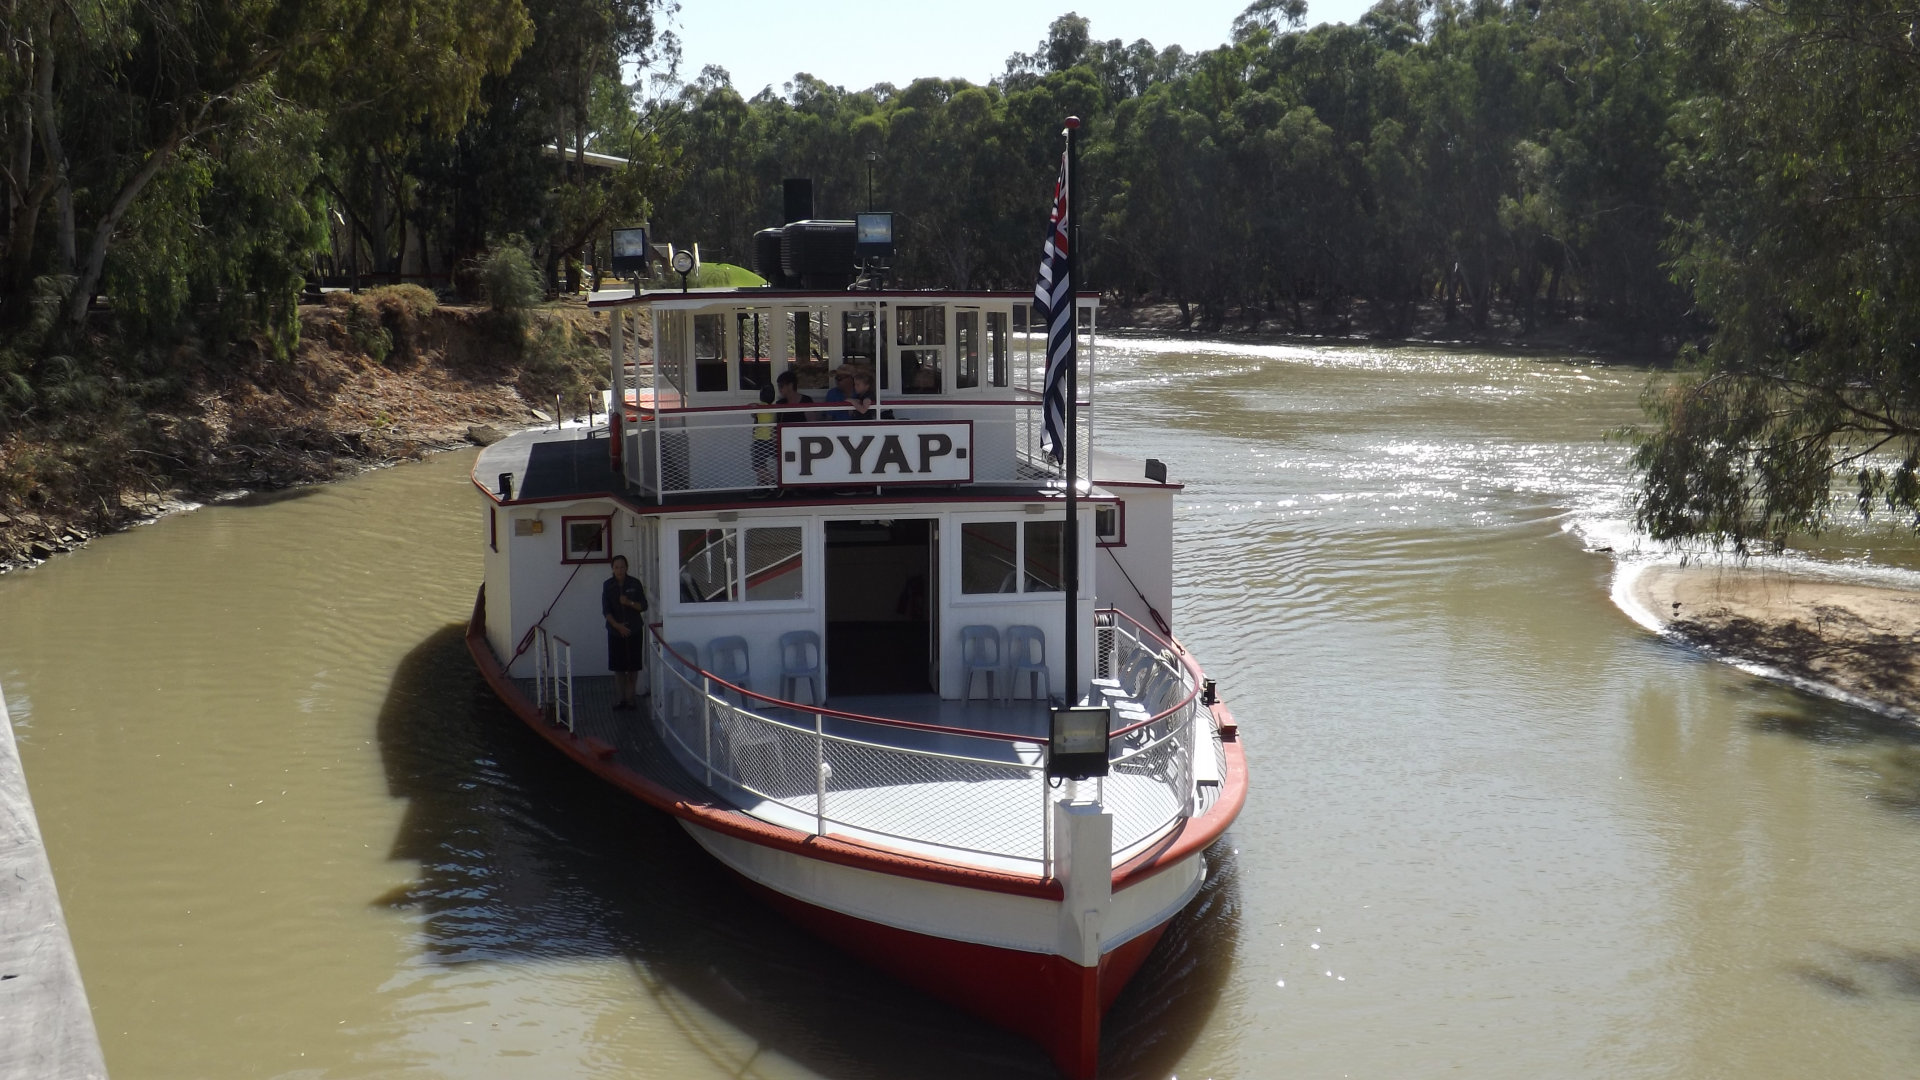 PYAP paddle steamer on the Little Murray River. The brown sign to river cruises in Swan Hill is operated at the Pioneer Settlement open air museum, on the paddlesteamer PS Pyap. The cruise goes along the Little Murray River passed the Swan Hill Caravan Park to join the Murray River, then towards the Murray Downs Marina, and passed the Murray Downs Homestead